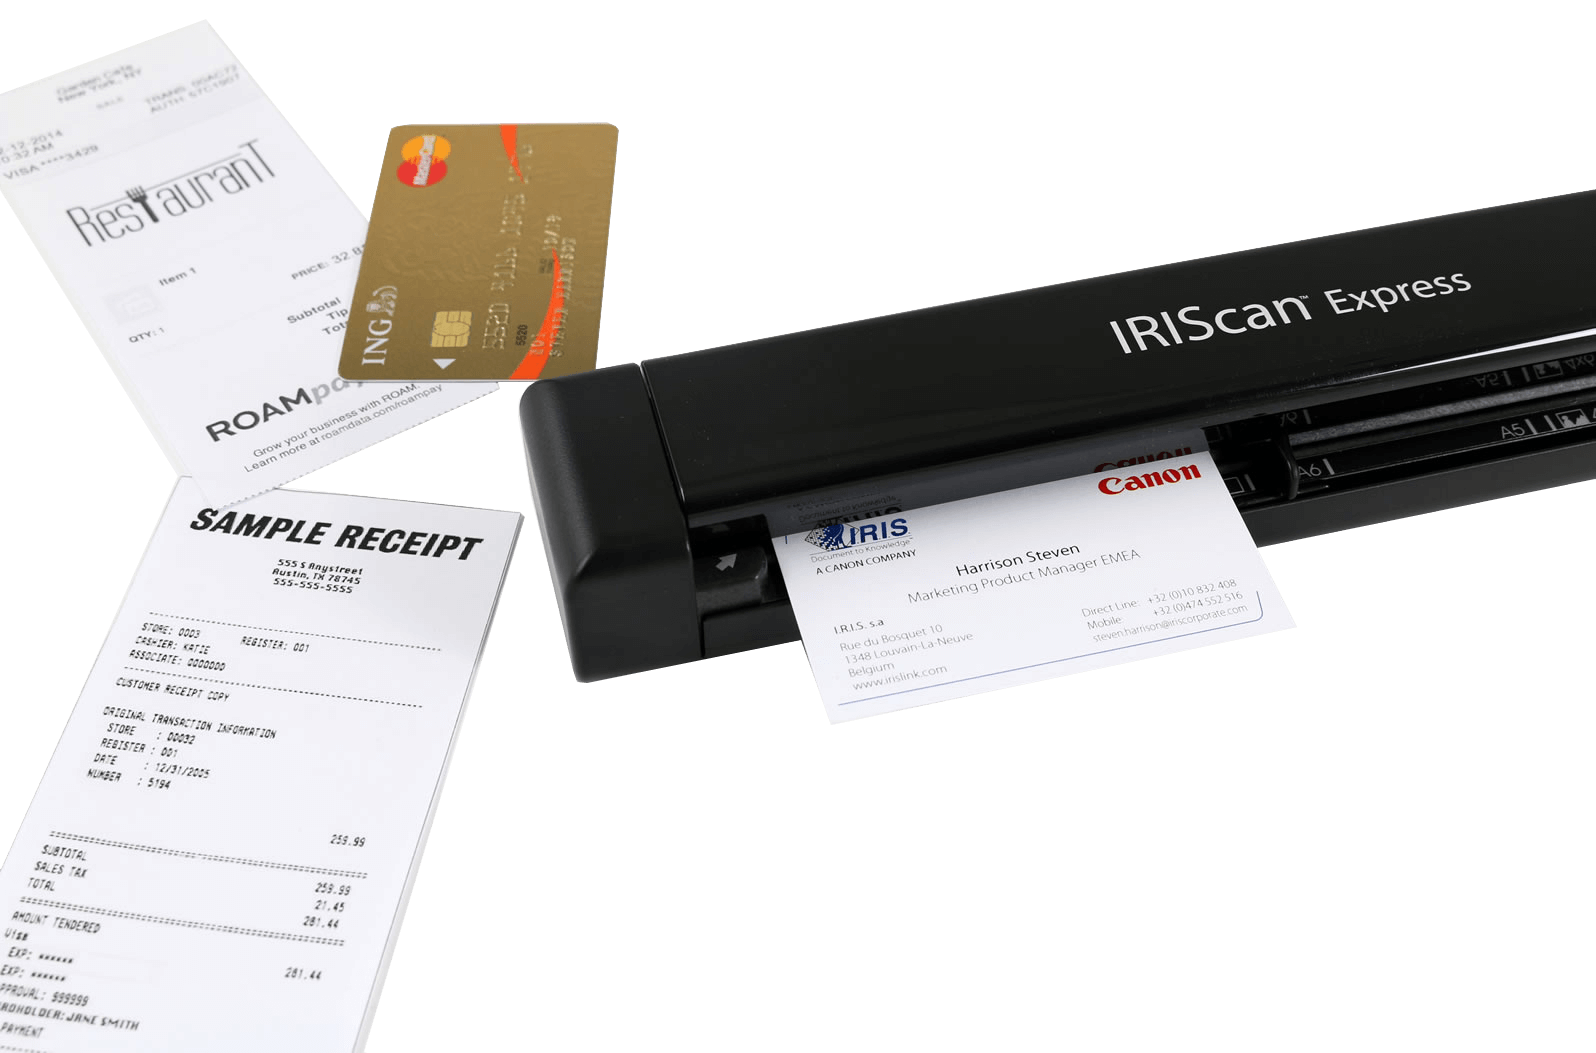 IRIScan Express 4 - Scan your documents in a few seconds